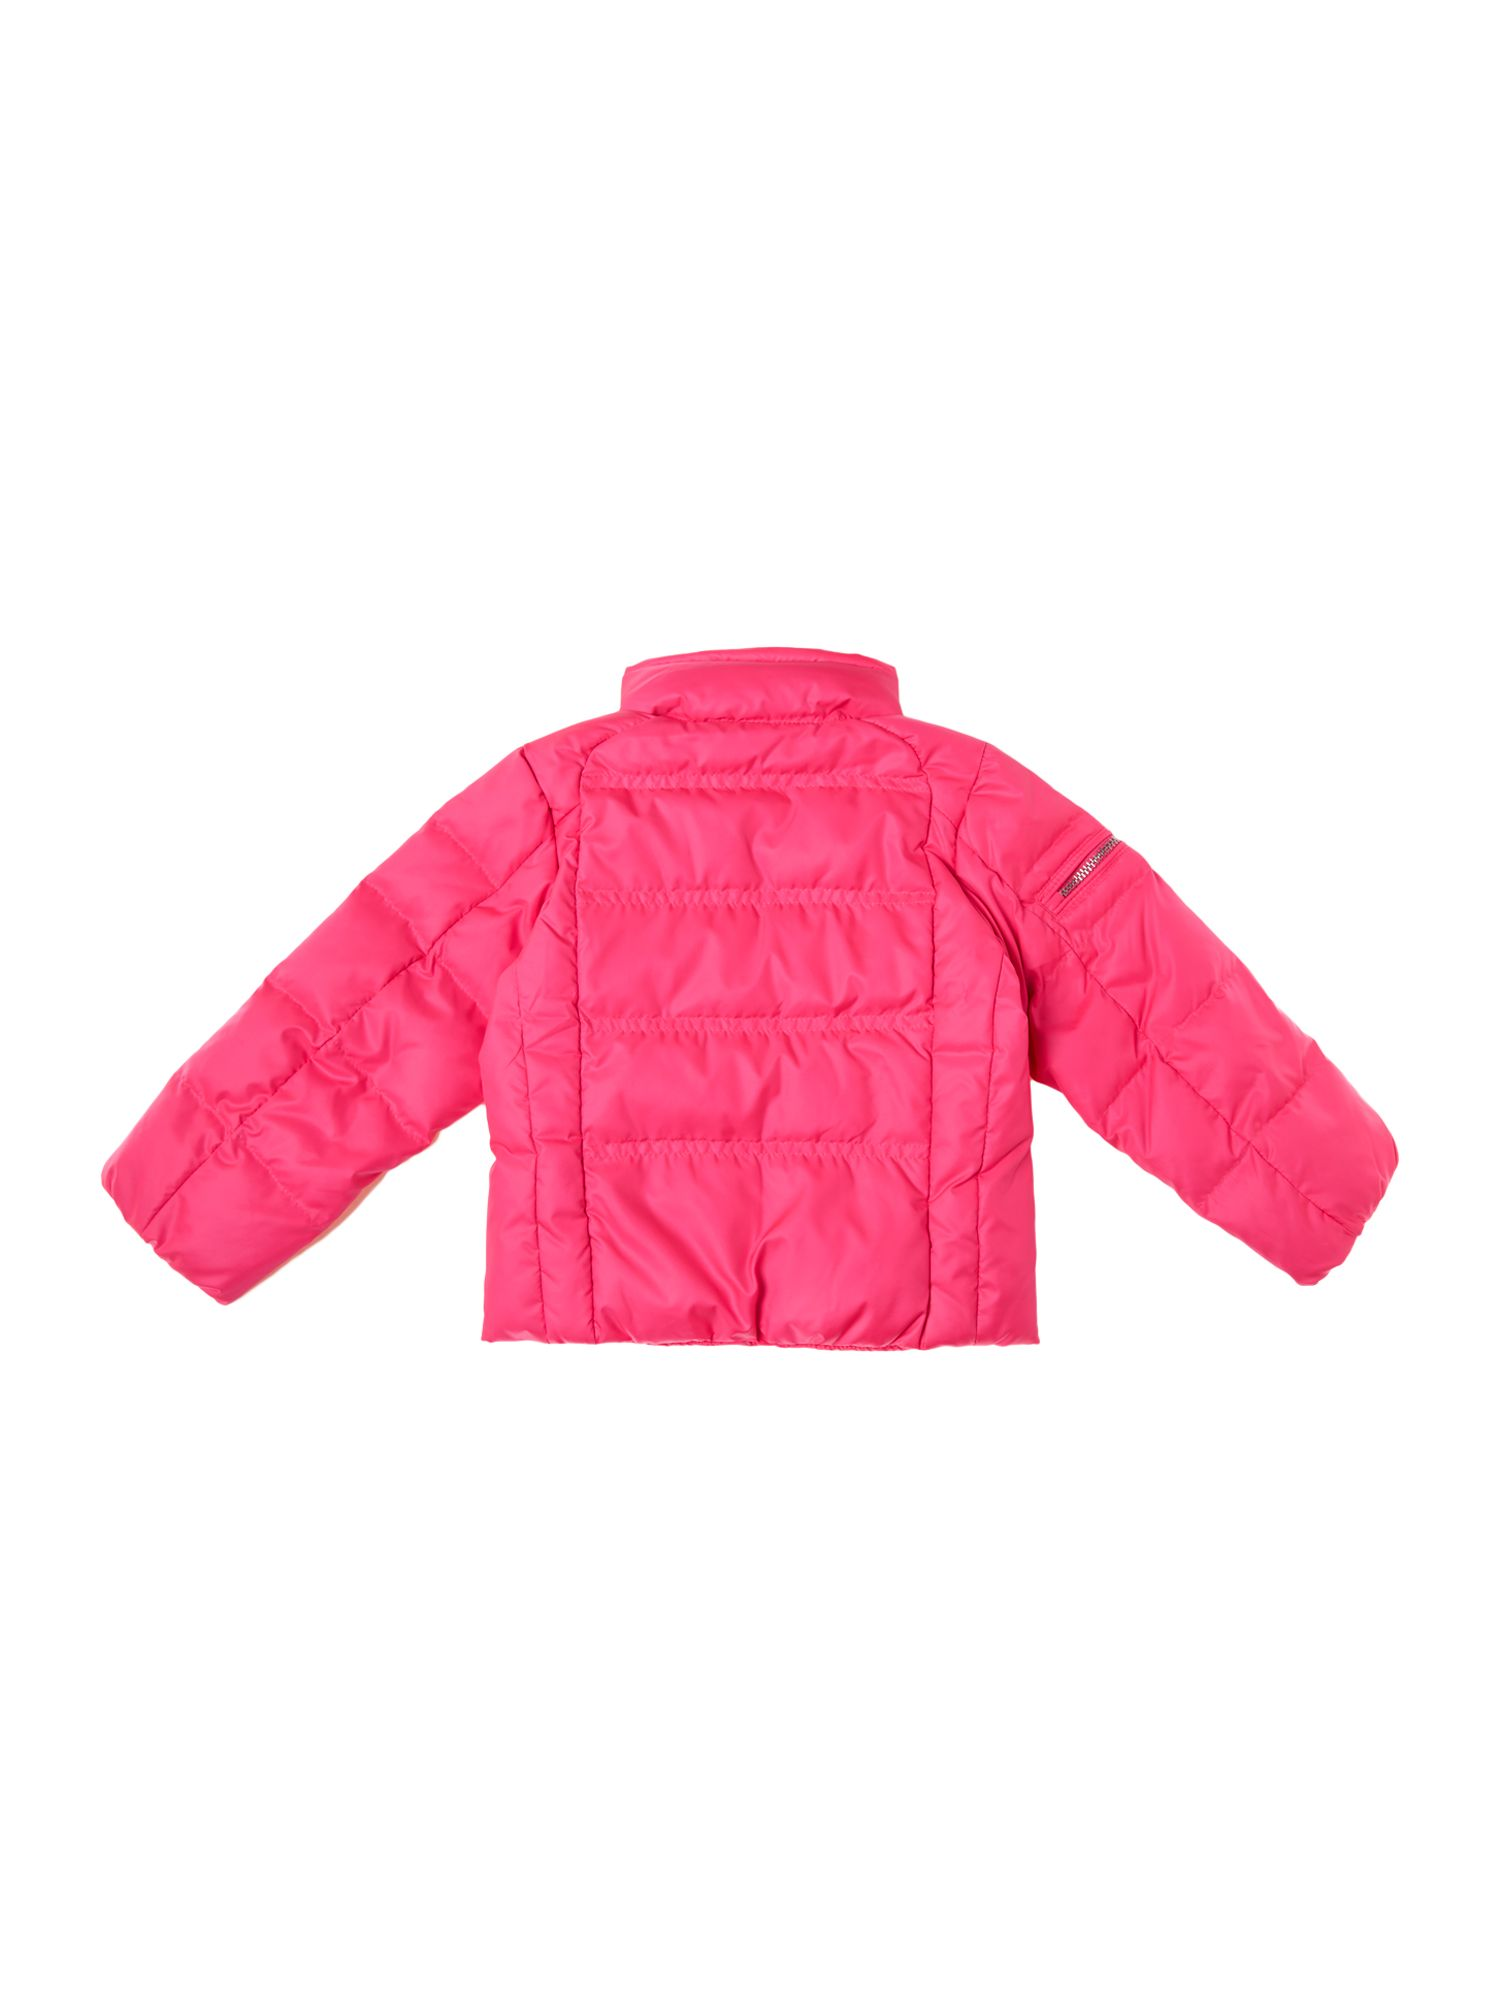 Girls racer jacket